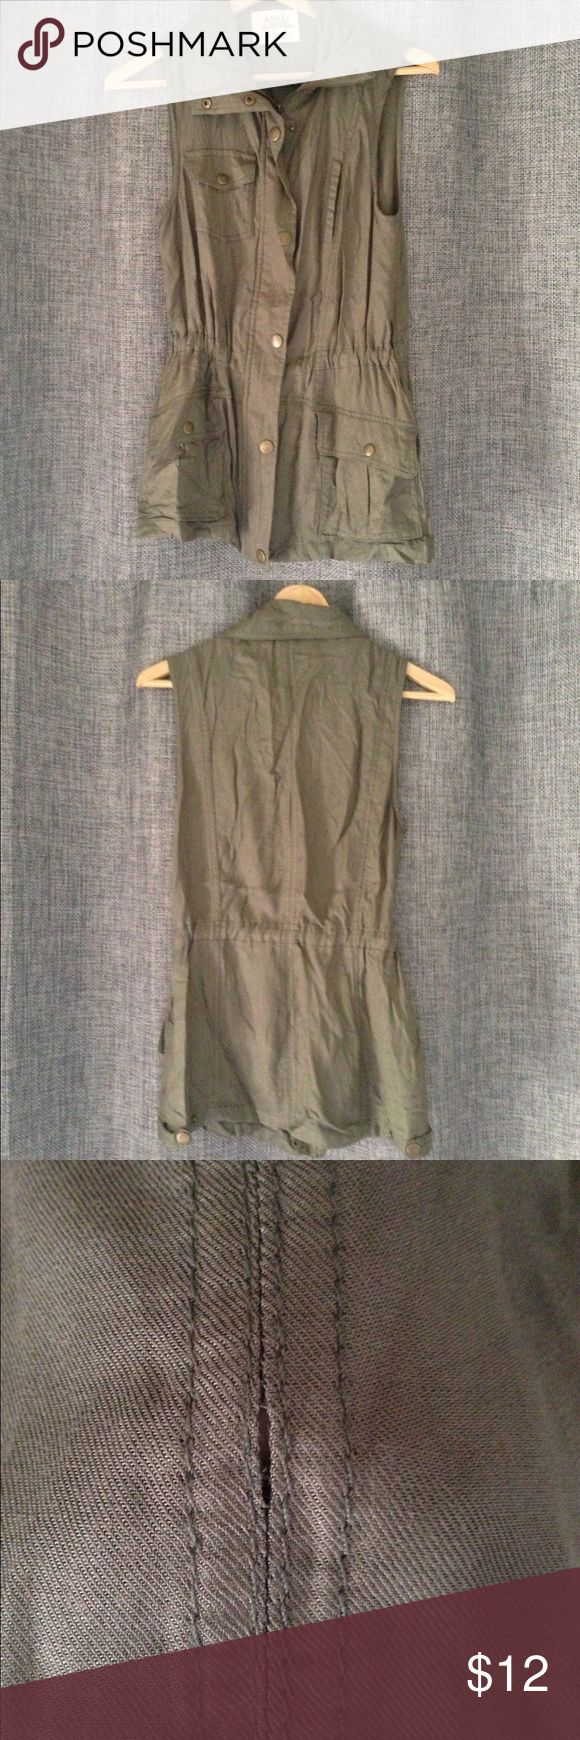 Khaki Green Anorak Style Vest Anorak style vest with waist-cinching drawstring. Zipper and button closure. Flap pockets along the front. *Small area on back seam has come undone and fabric is fraying along the side of one pocket. Jackets & Coats Vests